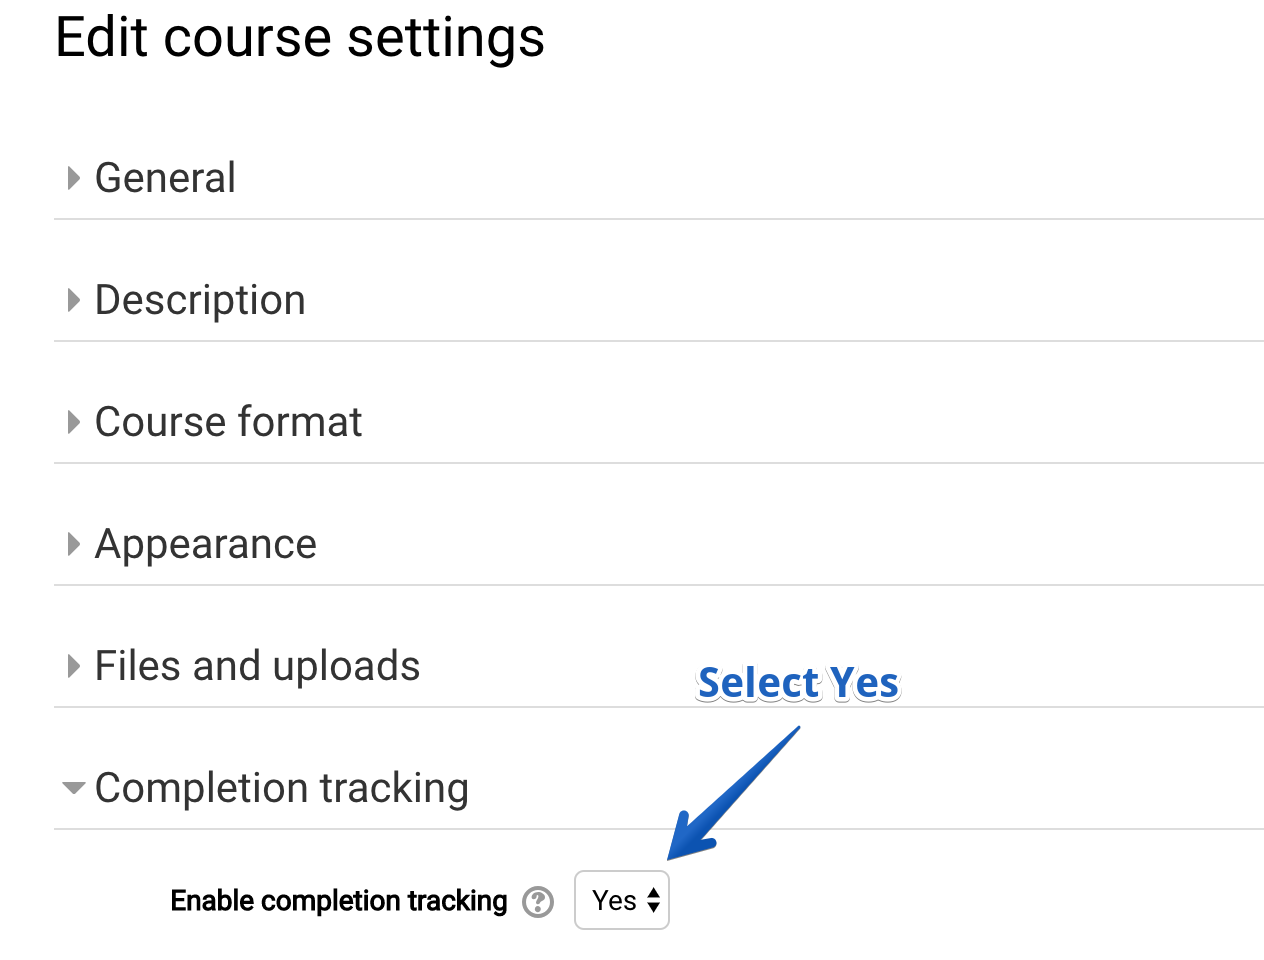 Edit_course_settings_2018-11-18_12-05-05.png